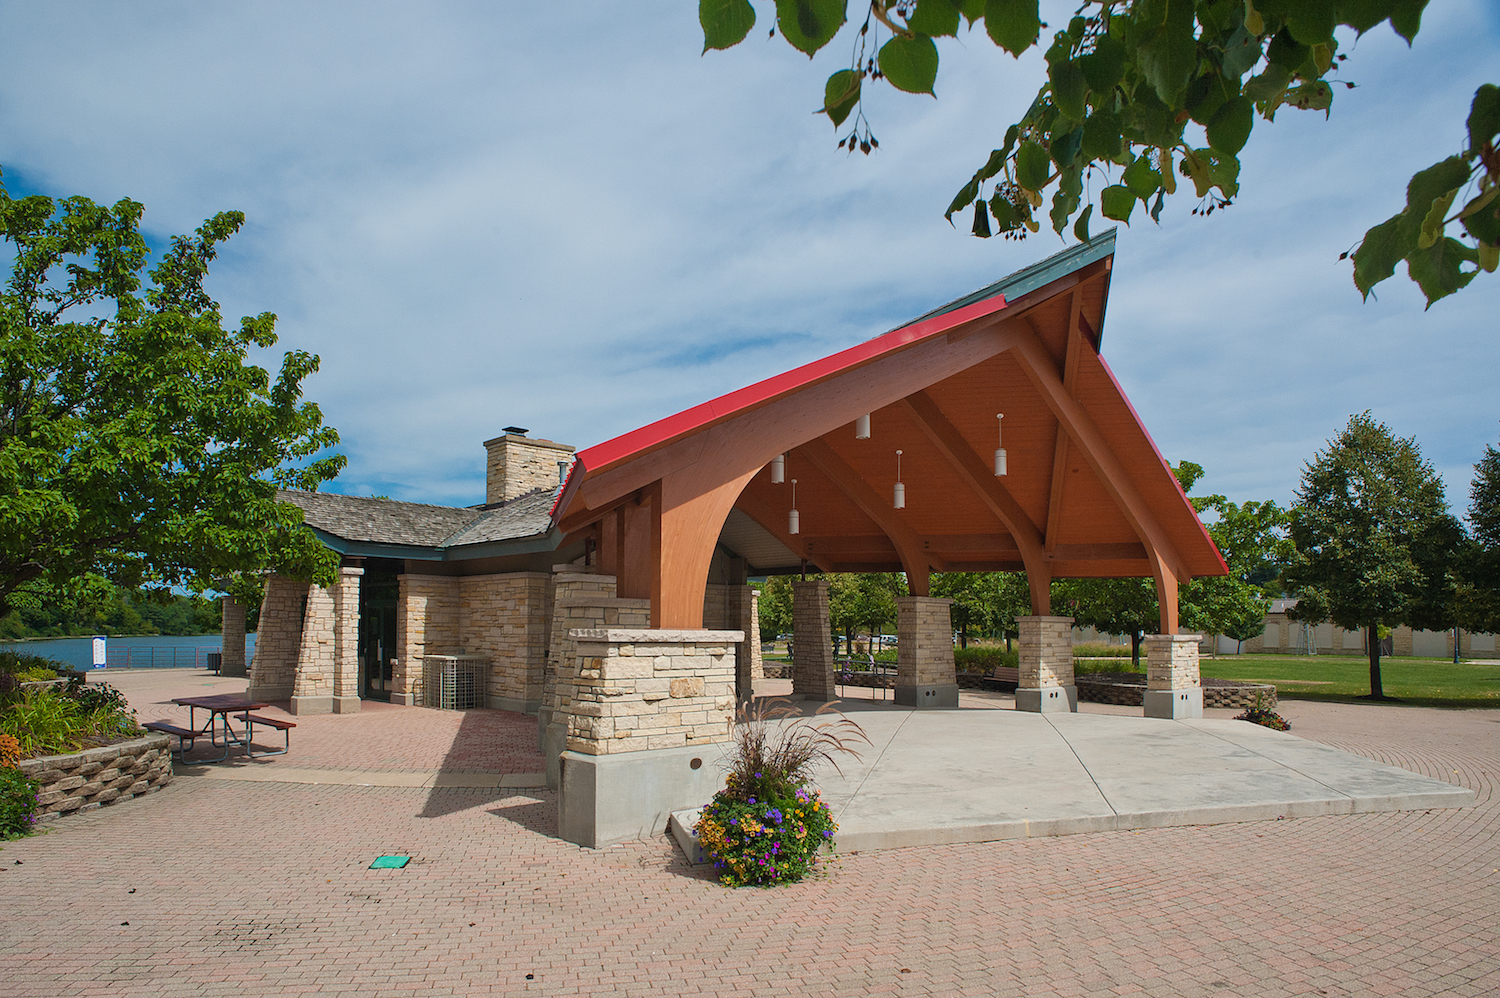 The band shell is integrated with the existing structure with prow-shaped overhangs to create larger cantilevers.